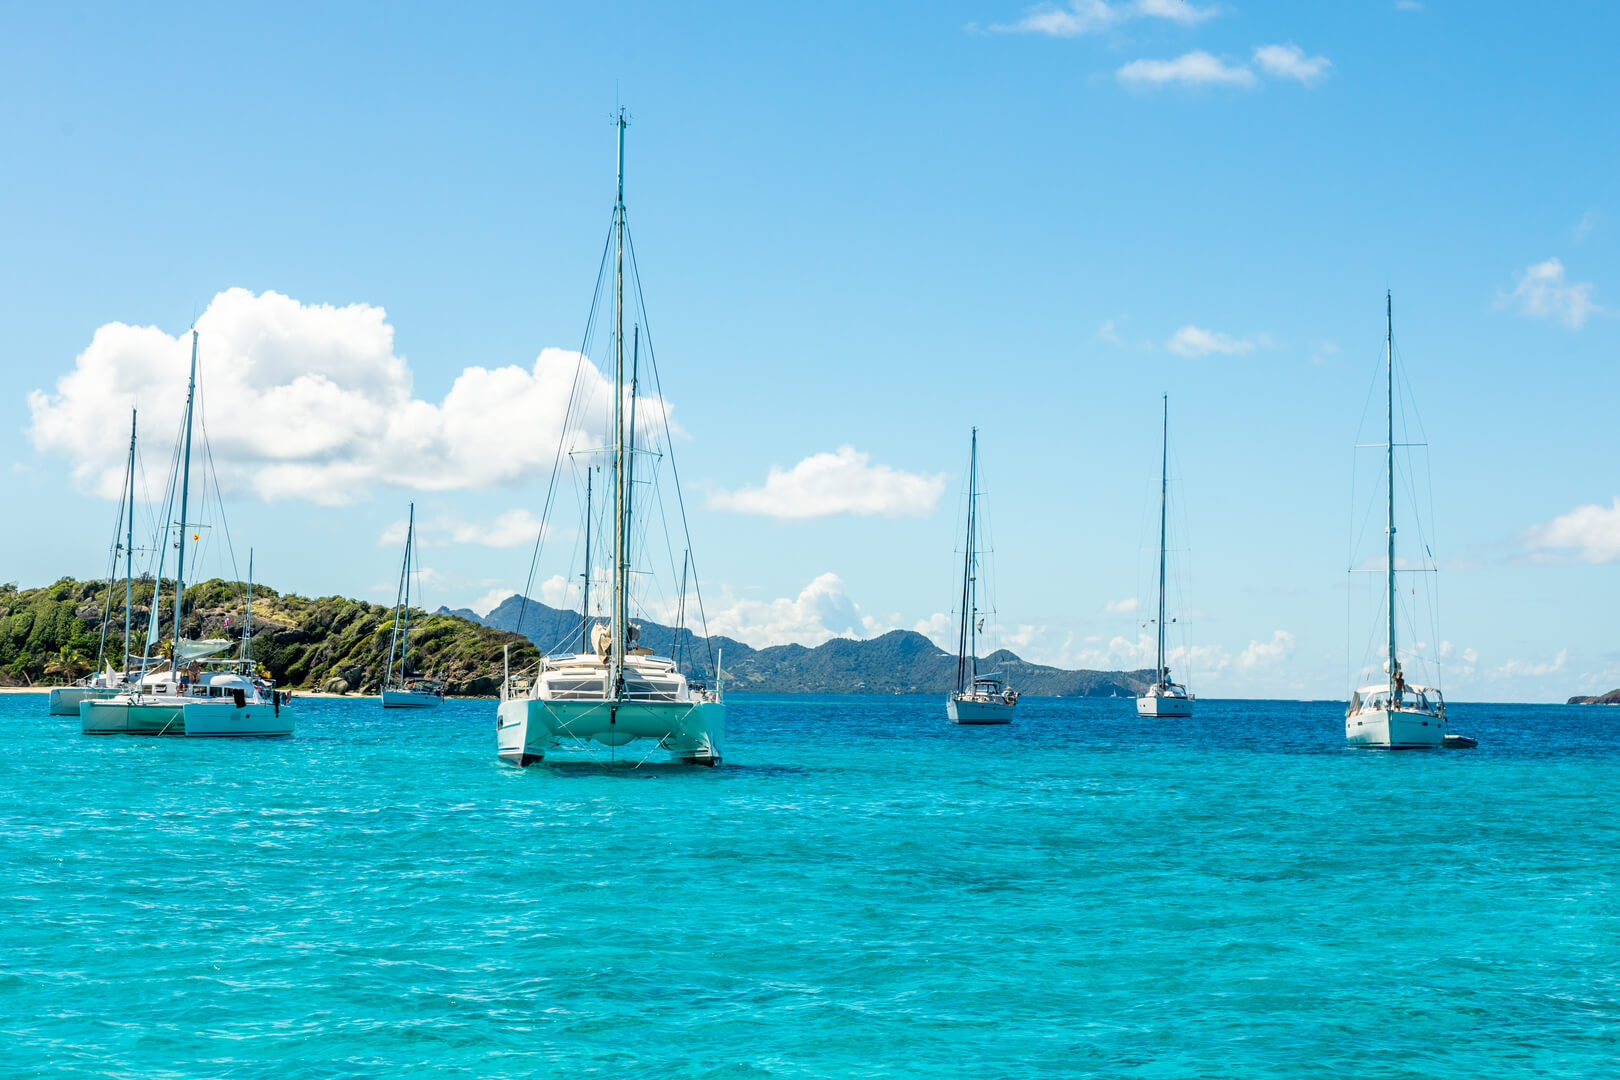 Turquoise colored sea with ancored yachts and catamarans, Tobago Cays tropical islands, Saint Vincent and the Grenadines, Caribbean sea